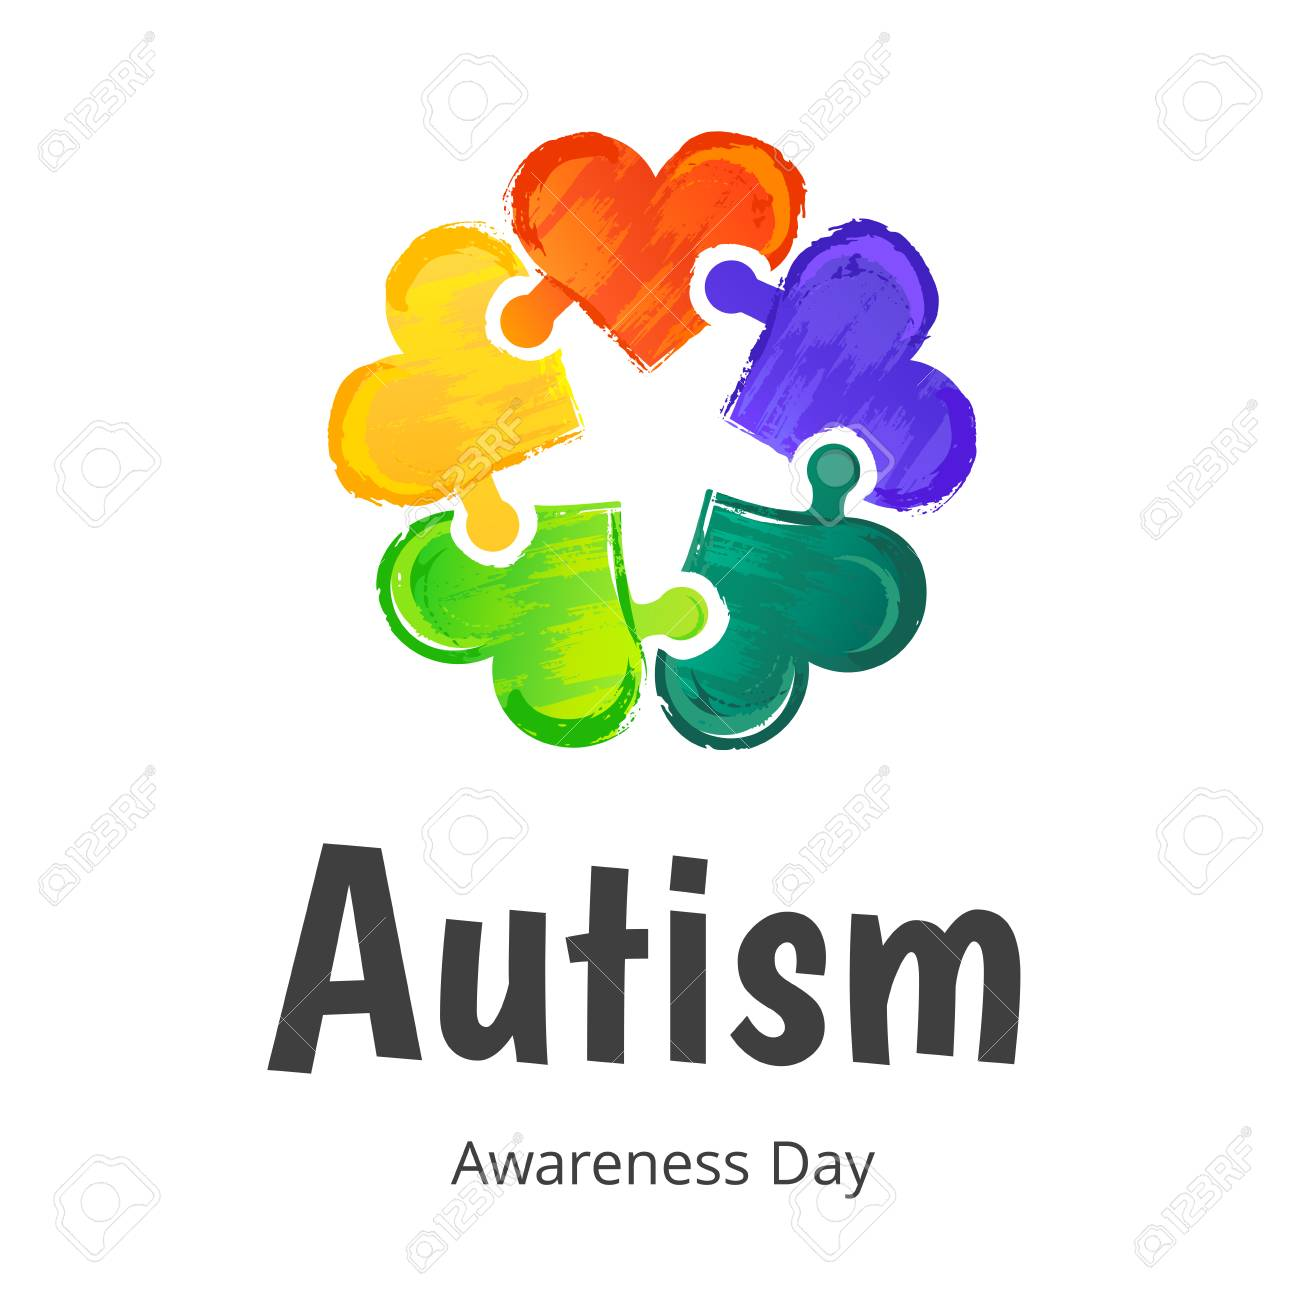 Autism awareness day ilustration royalty free cliparts vectors autism awareness day ilustration stock vector 87717608 biocorpaavc Gallery